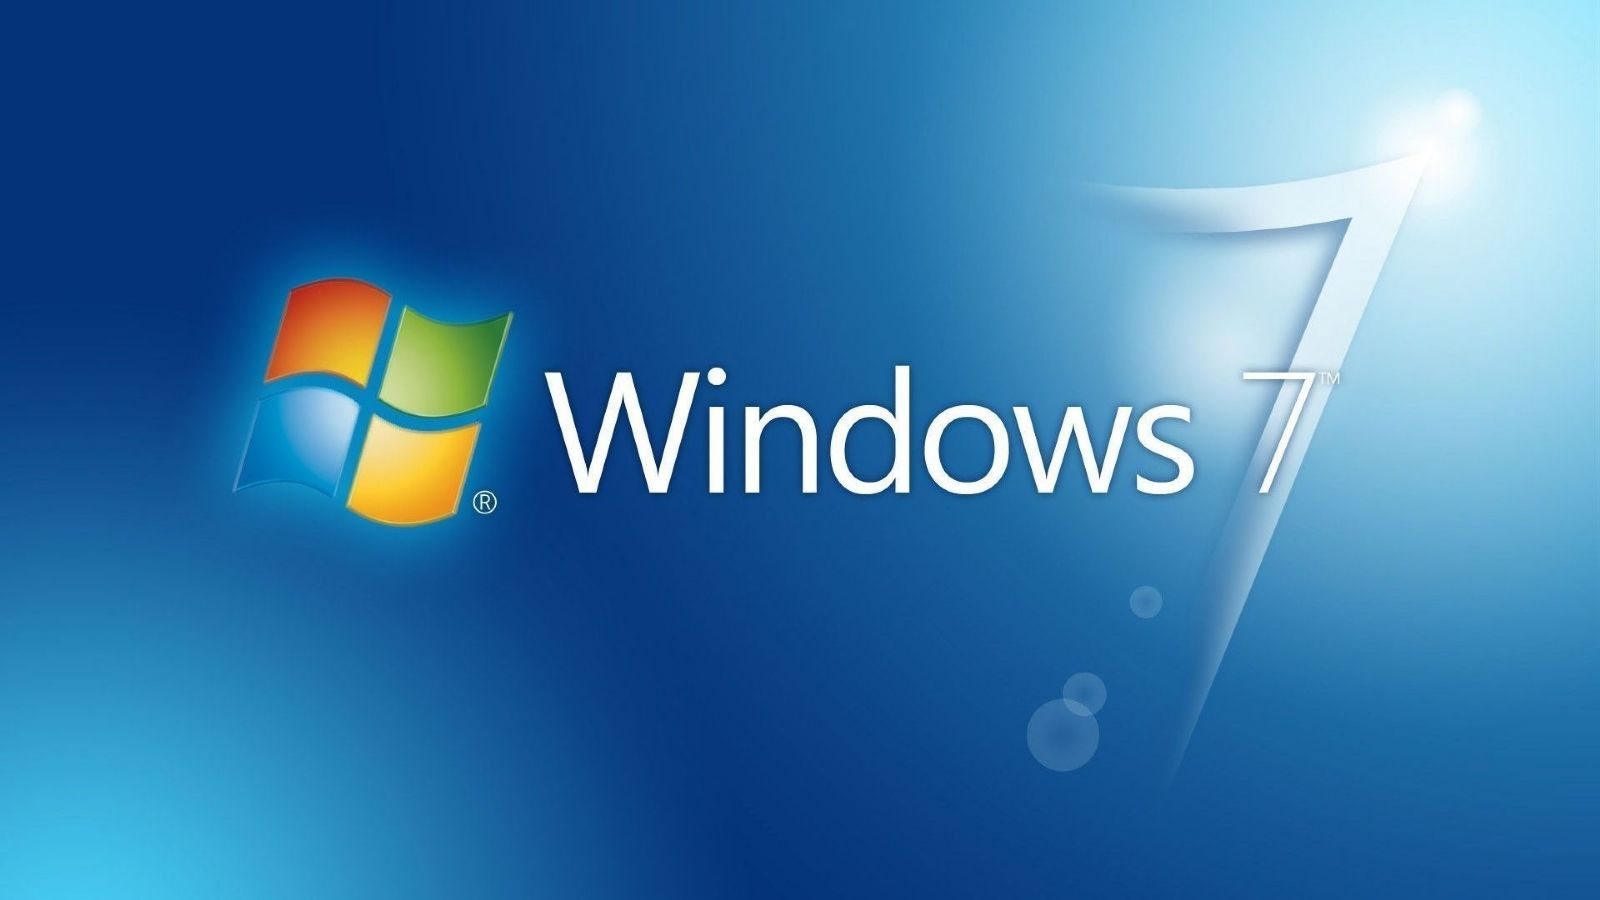 Windows 7 Wallpaper Hd 1600x900 Wallpapersafari Microsoft Windows Windows Wallpaper Windows 7 Themes